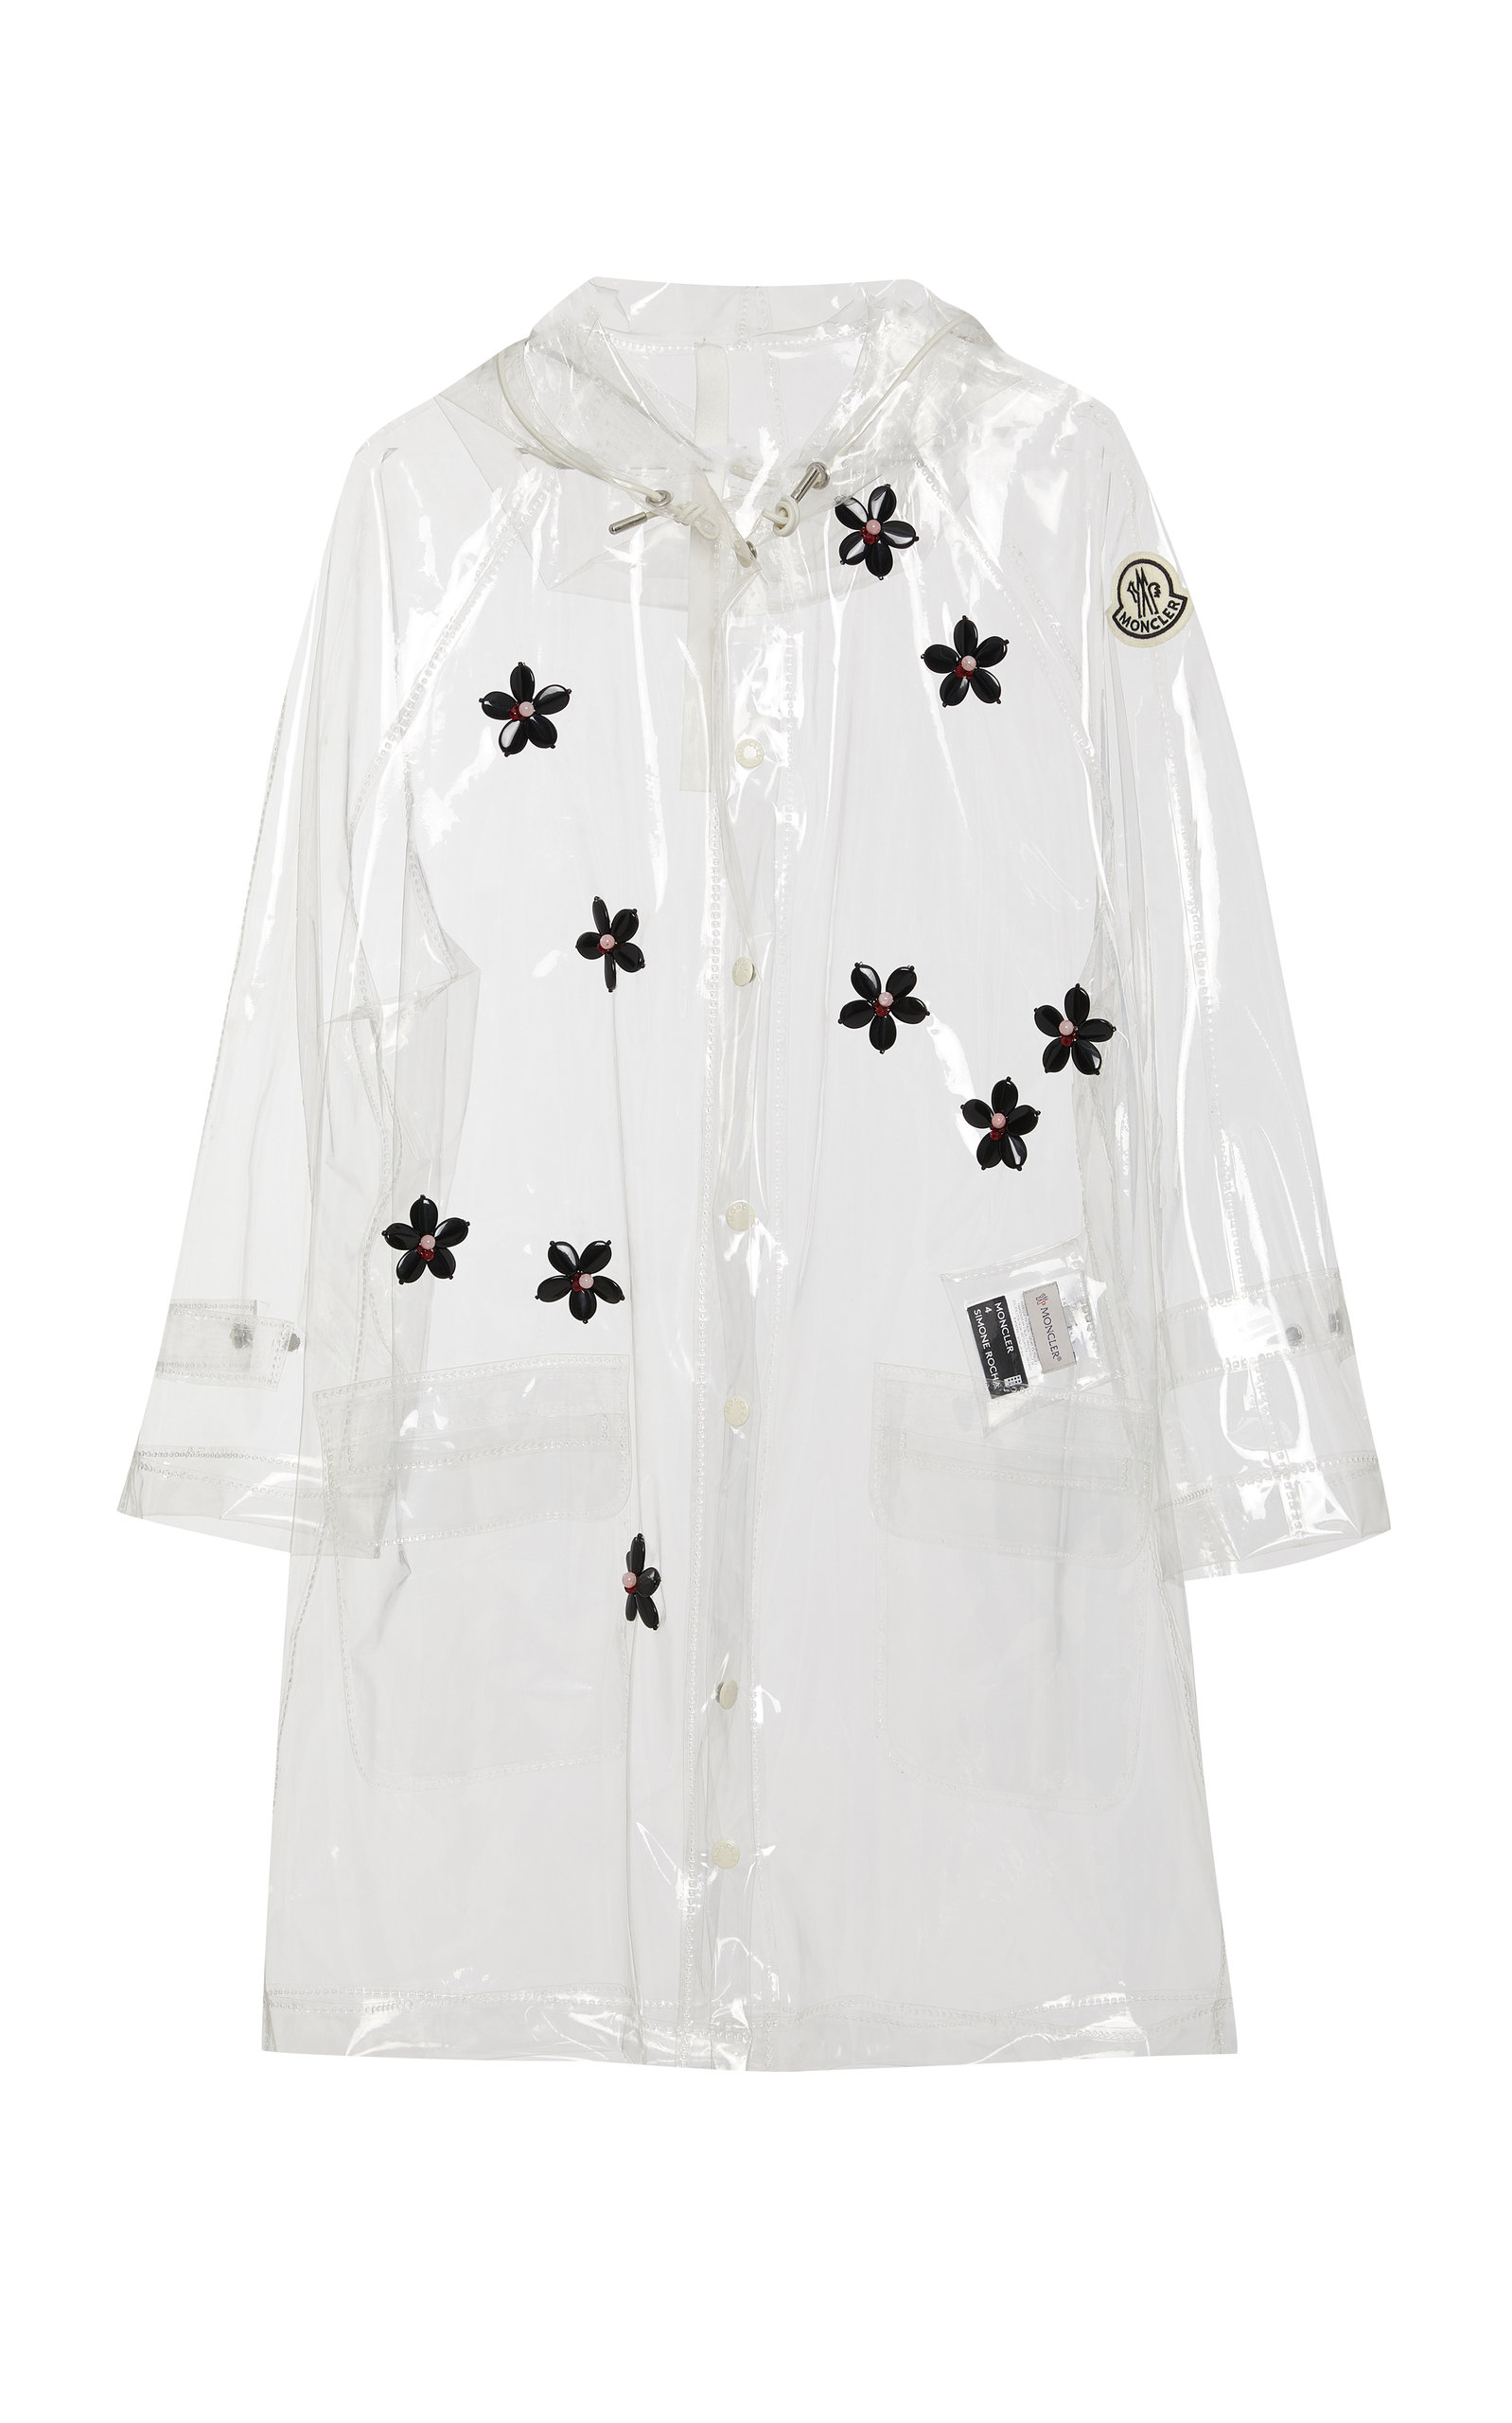 Moncler Genius Coats + SIMONE ROCHA FLORAL-APPLIQUÉD PVC HOODED RAINCOAT